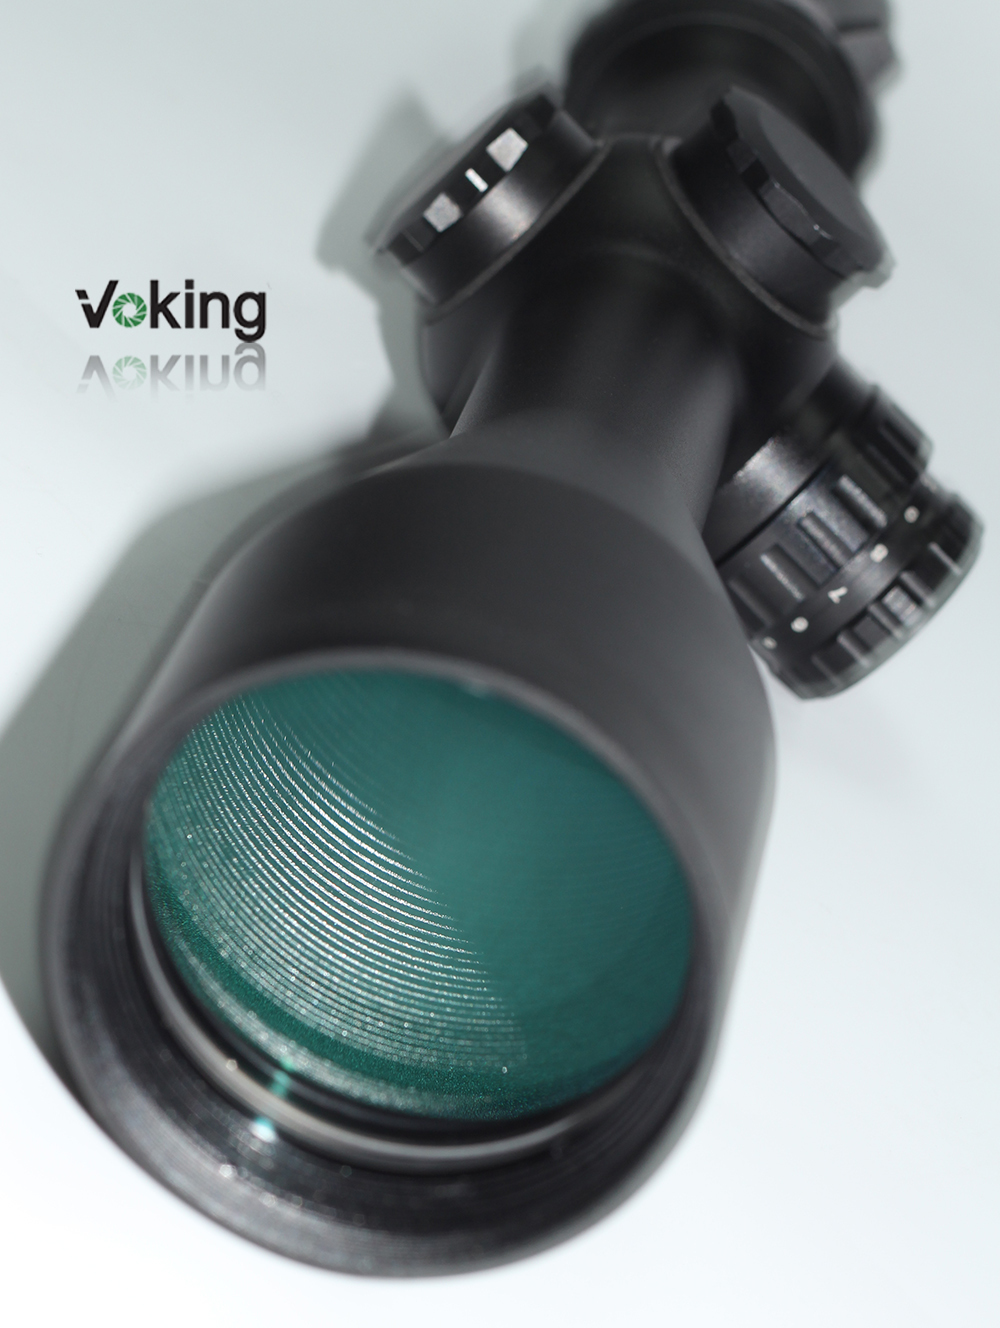 Voking 4-20X50mm side wheel focus rifle scope hunting weapons measuring scope